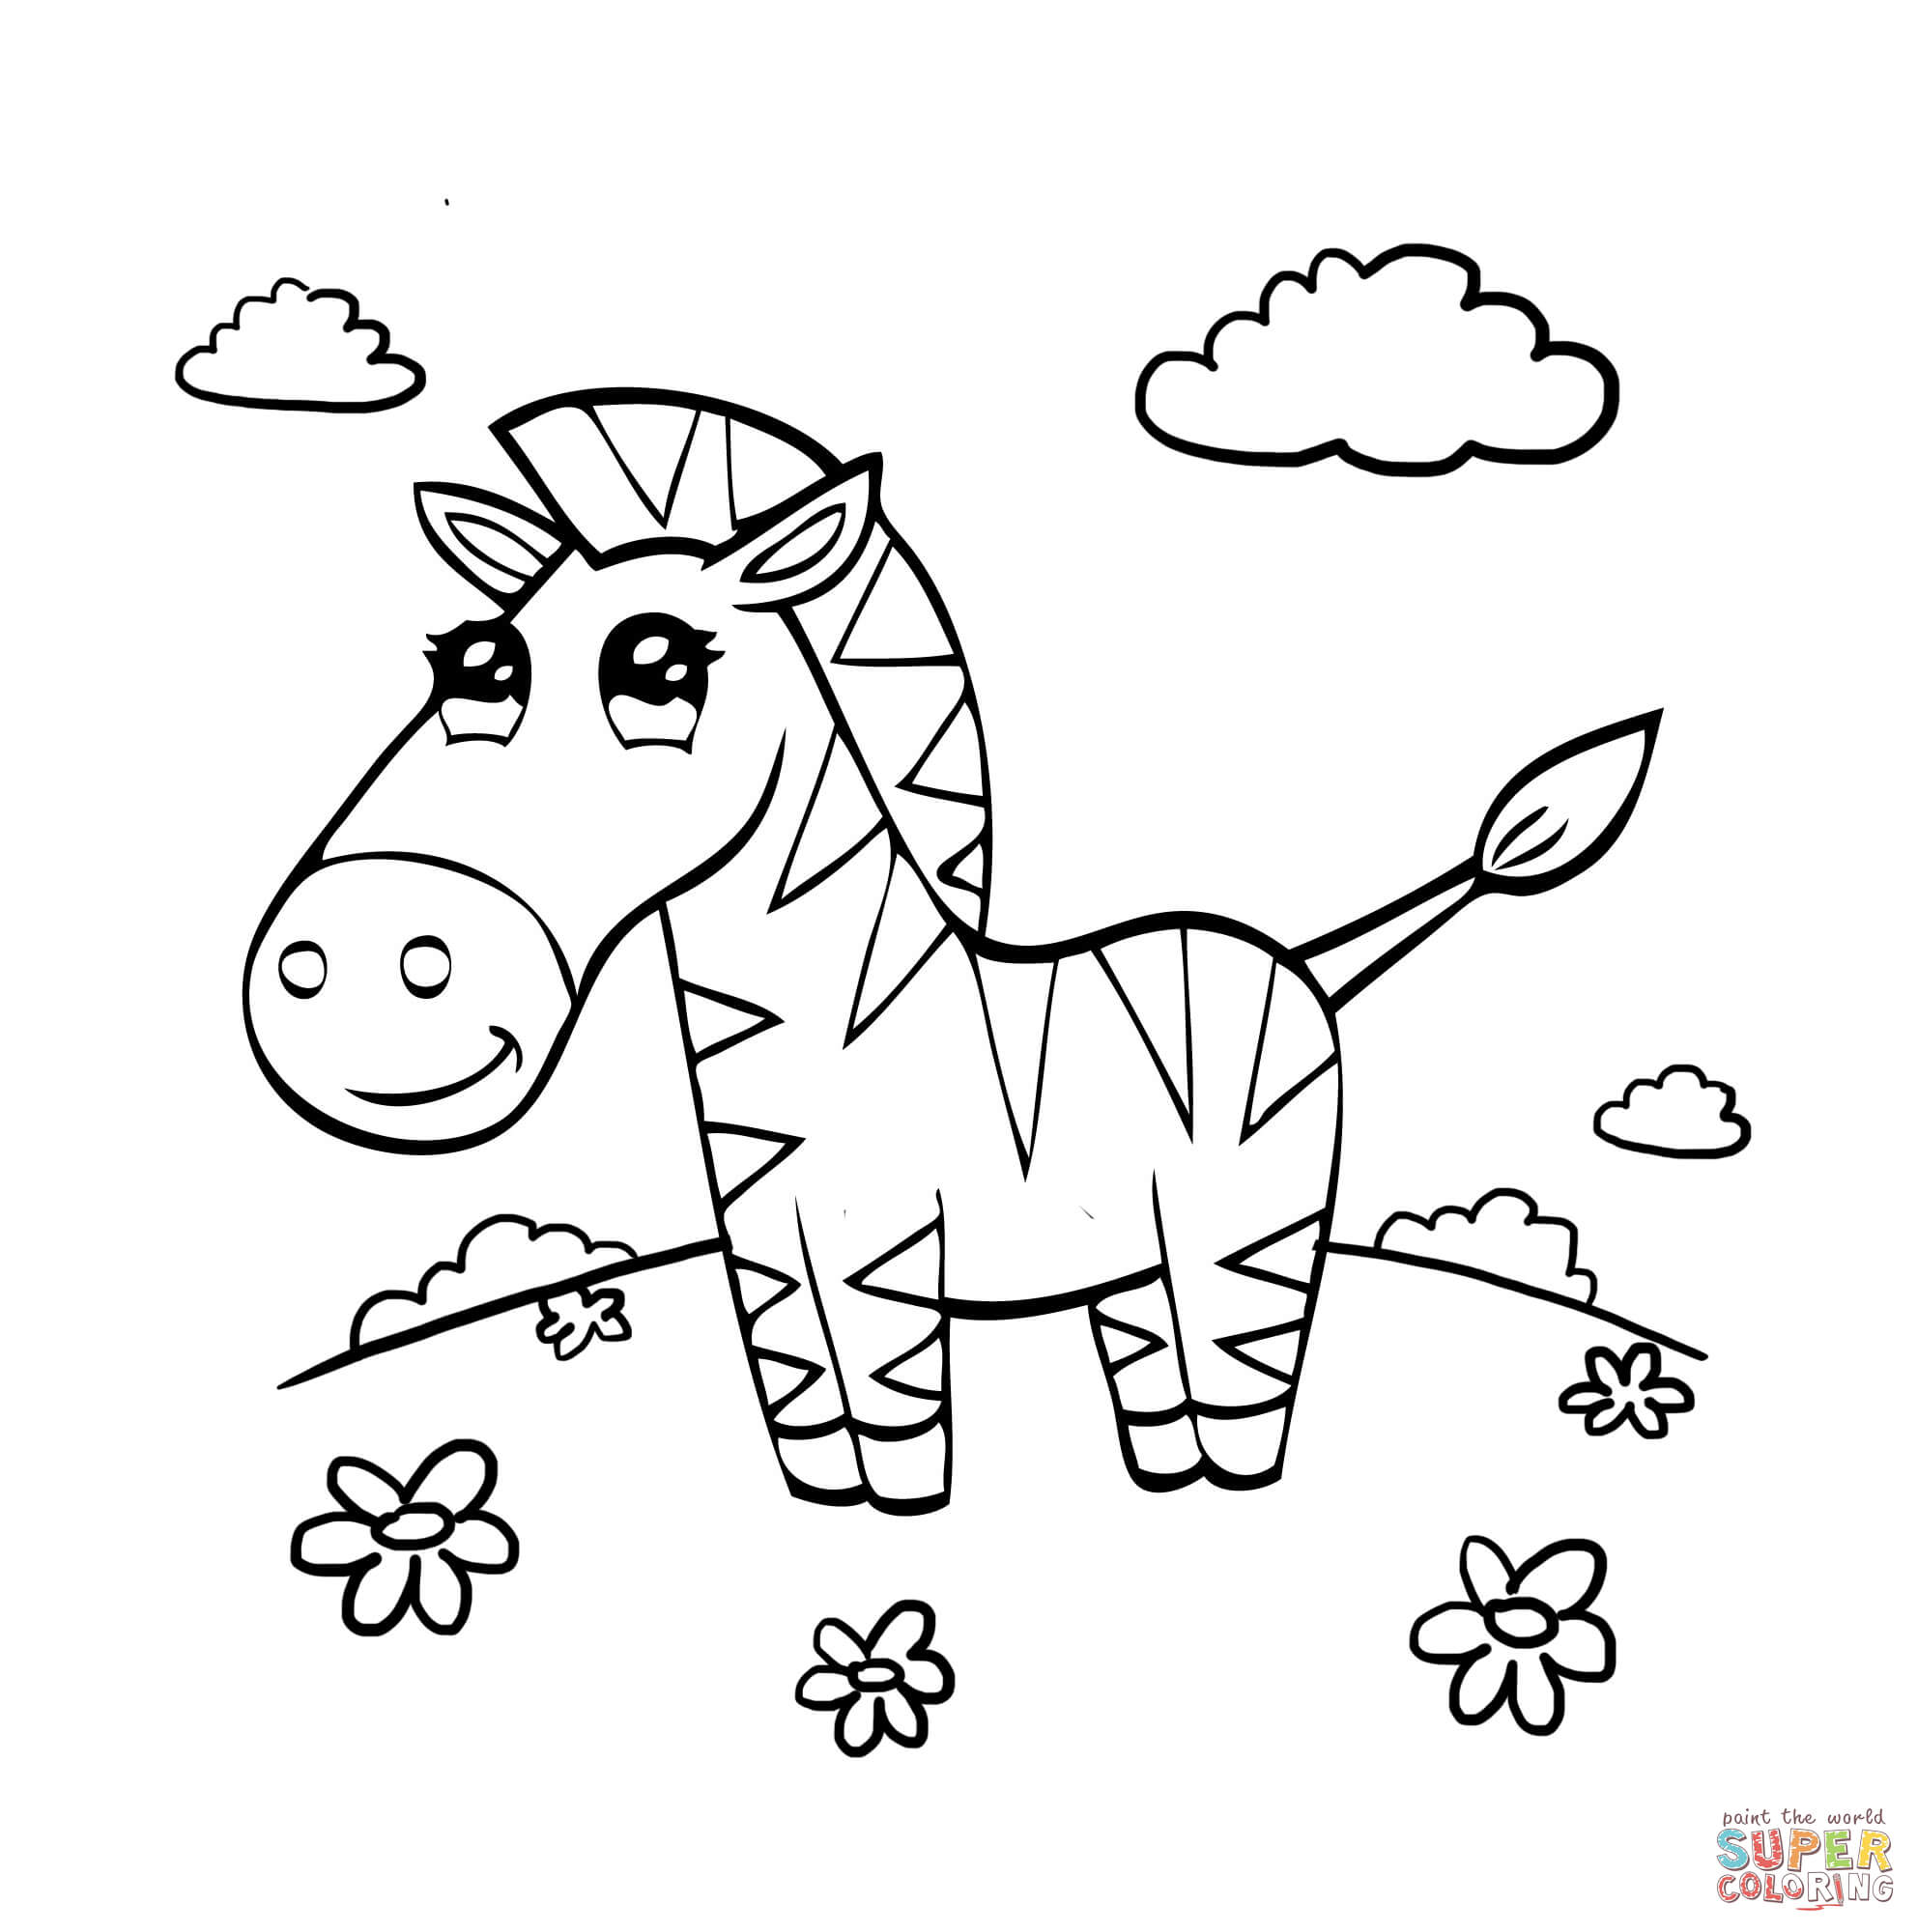 1984x2000 Cute Baby Zebra Coloring Page Free Printable Coloring Pages